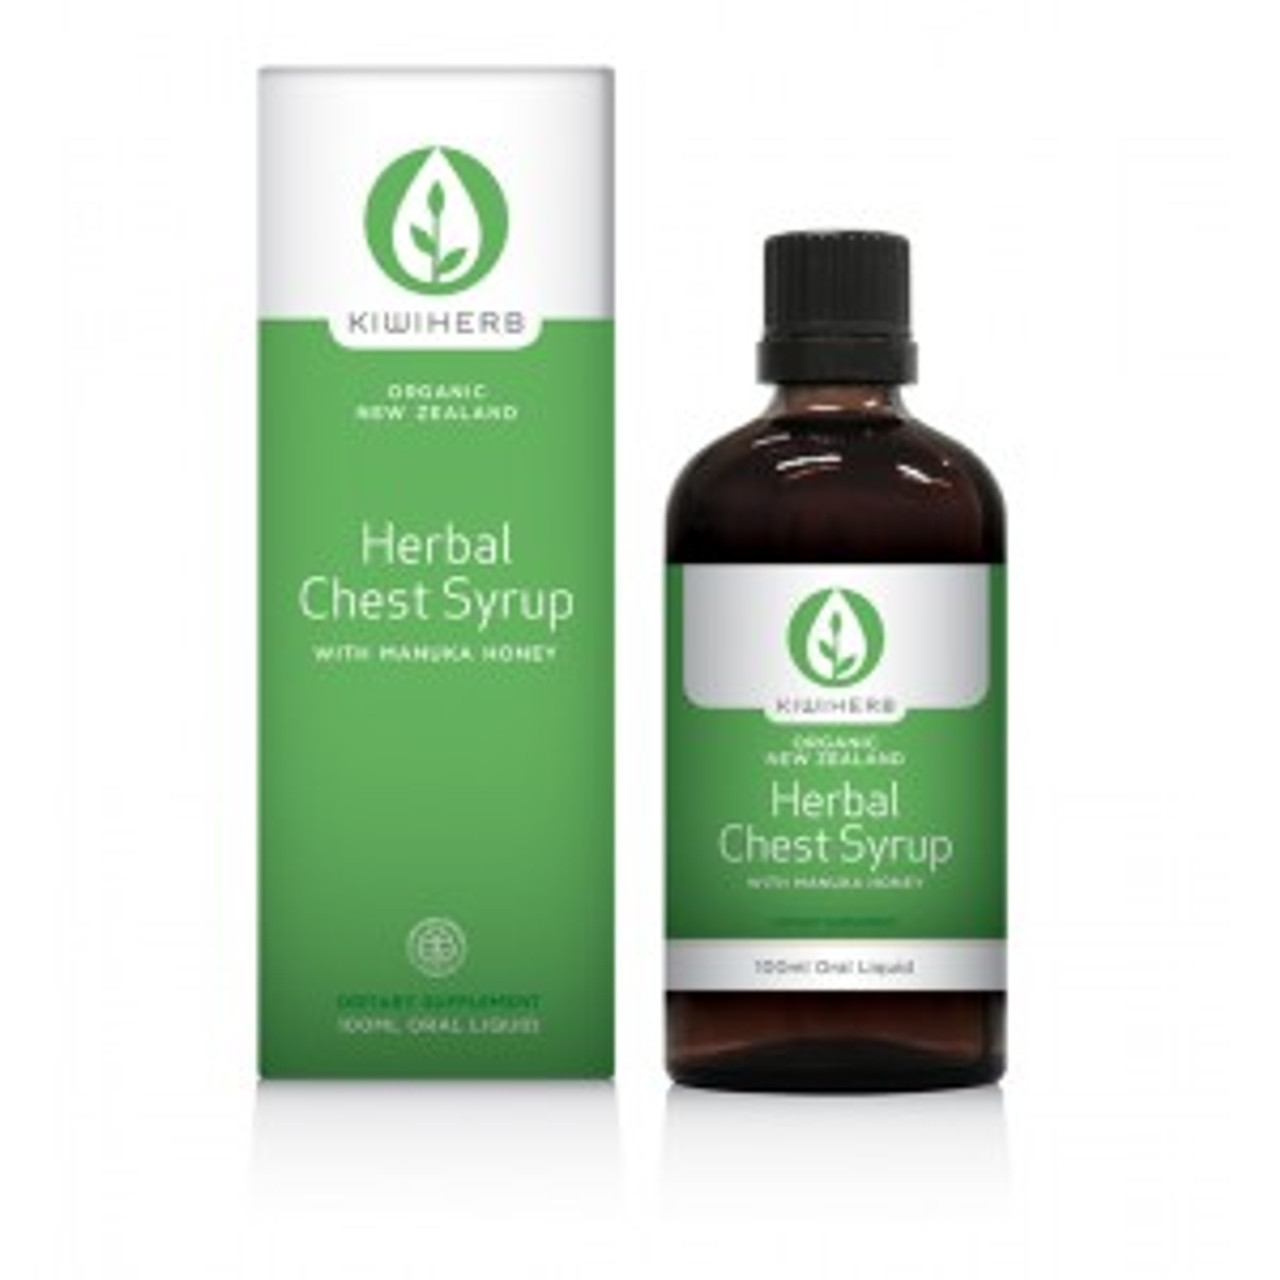 Herbal chest syrup 100ml